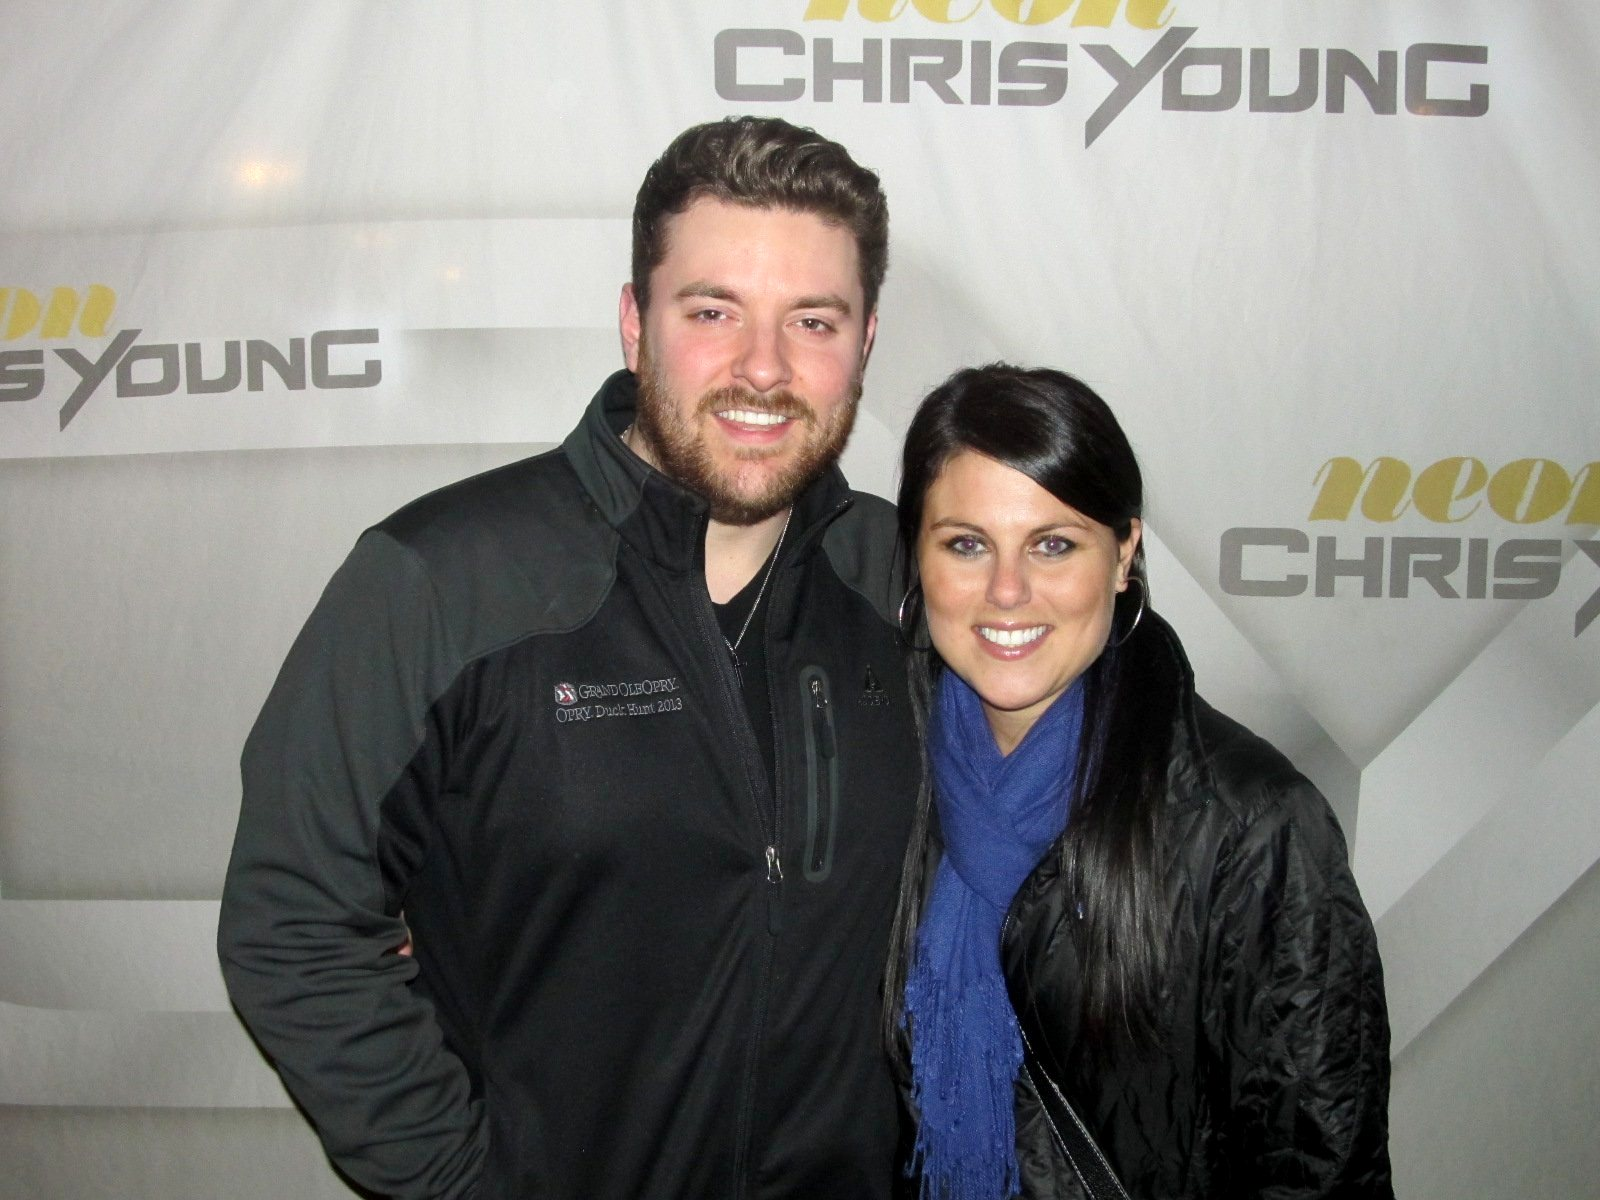 chris young meet and greet guidelines